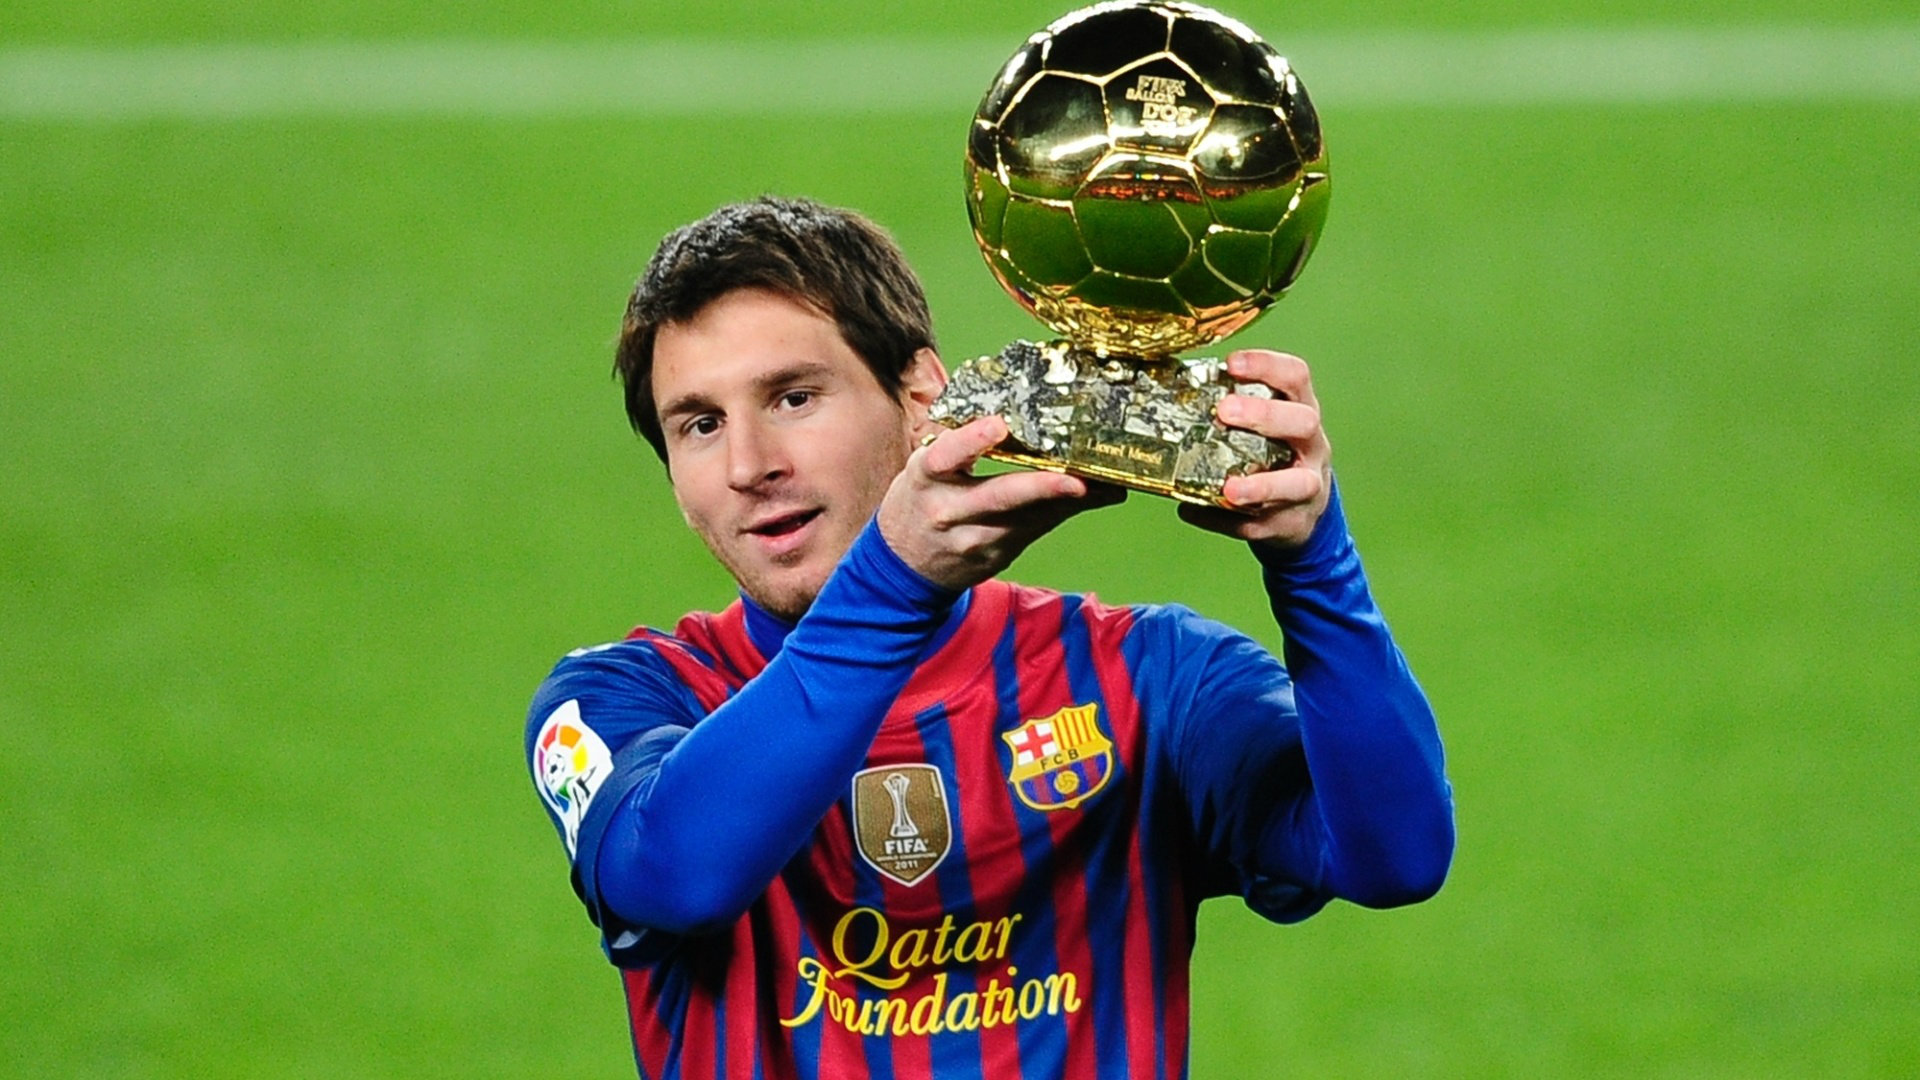 Soccer Lionel Messi HD Desktop Wallpapers Most HD Wallpapers 1920x1080